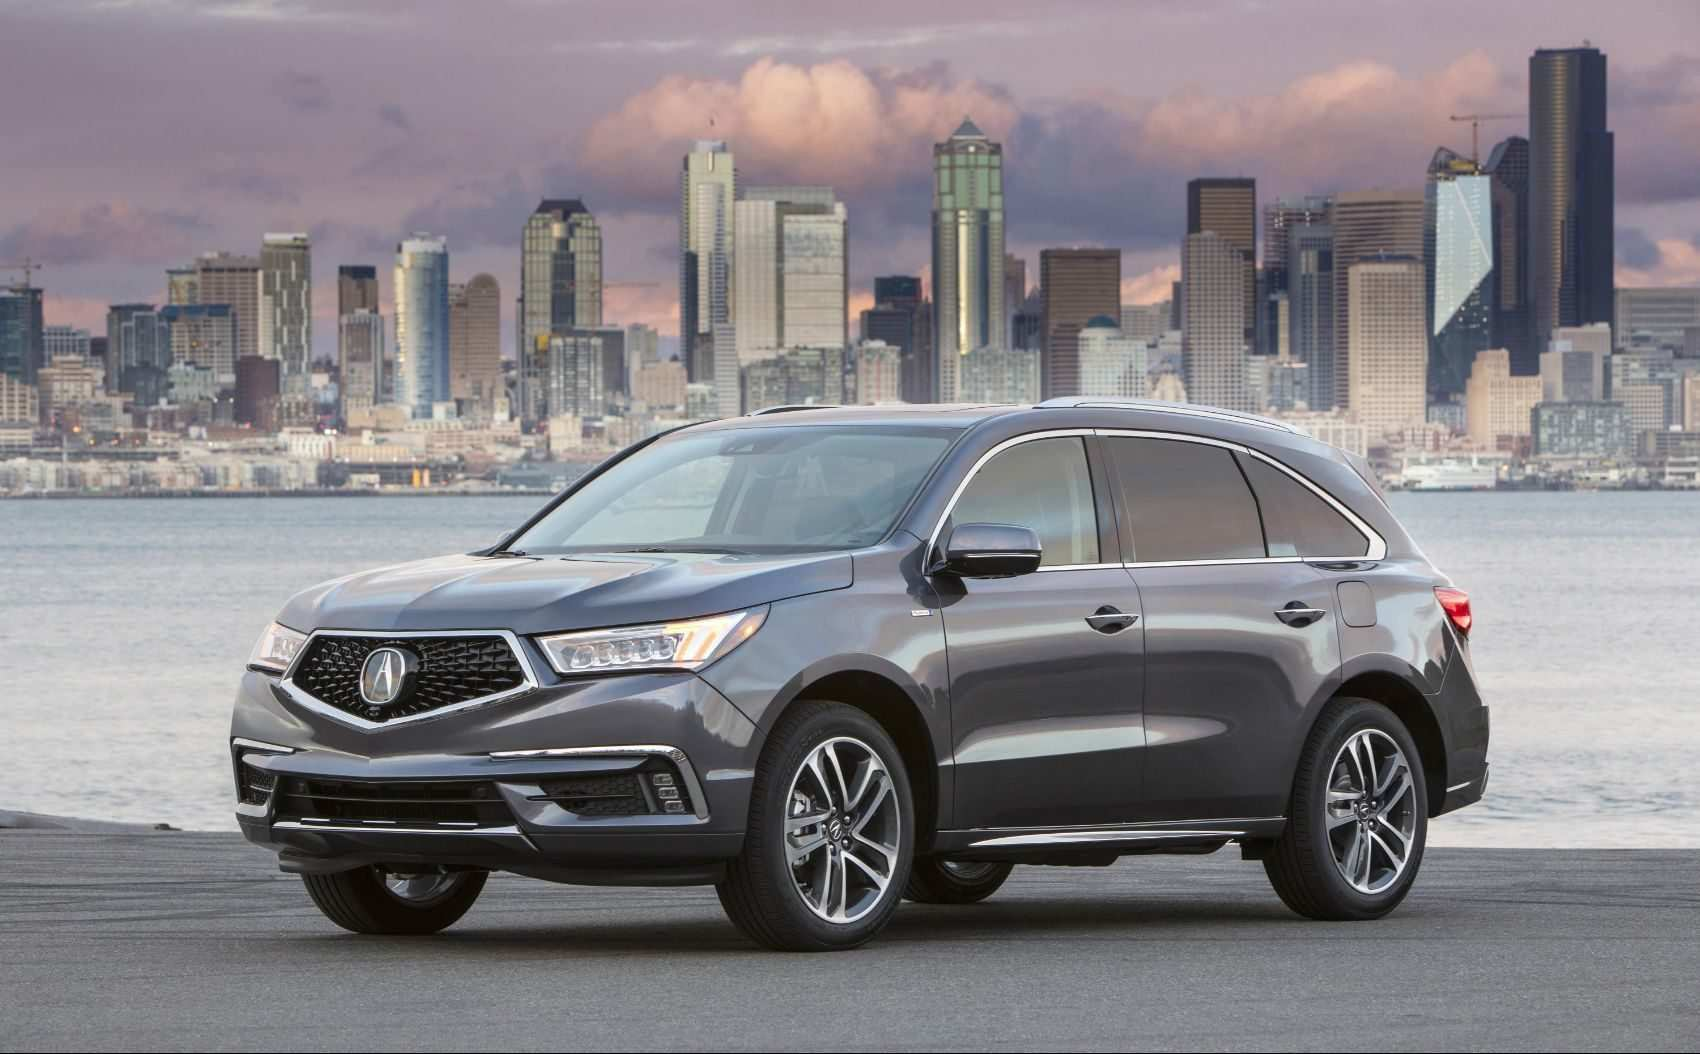 75 The Best Acura Mdx Changes For 2020 Exterior And Interior